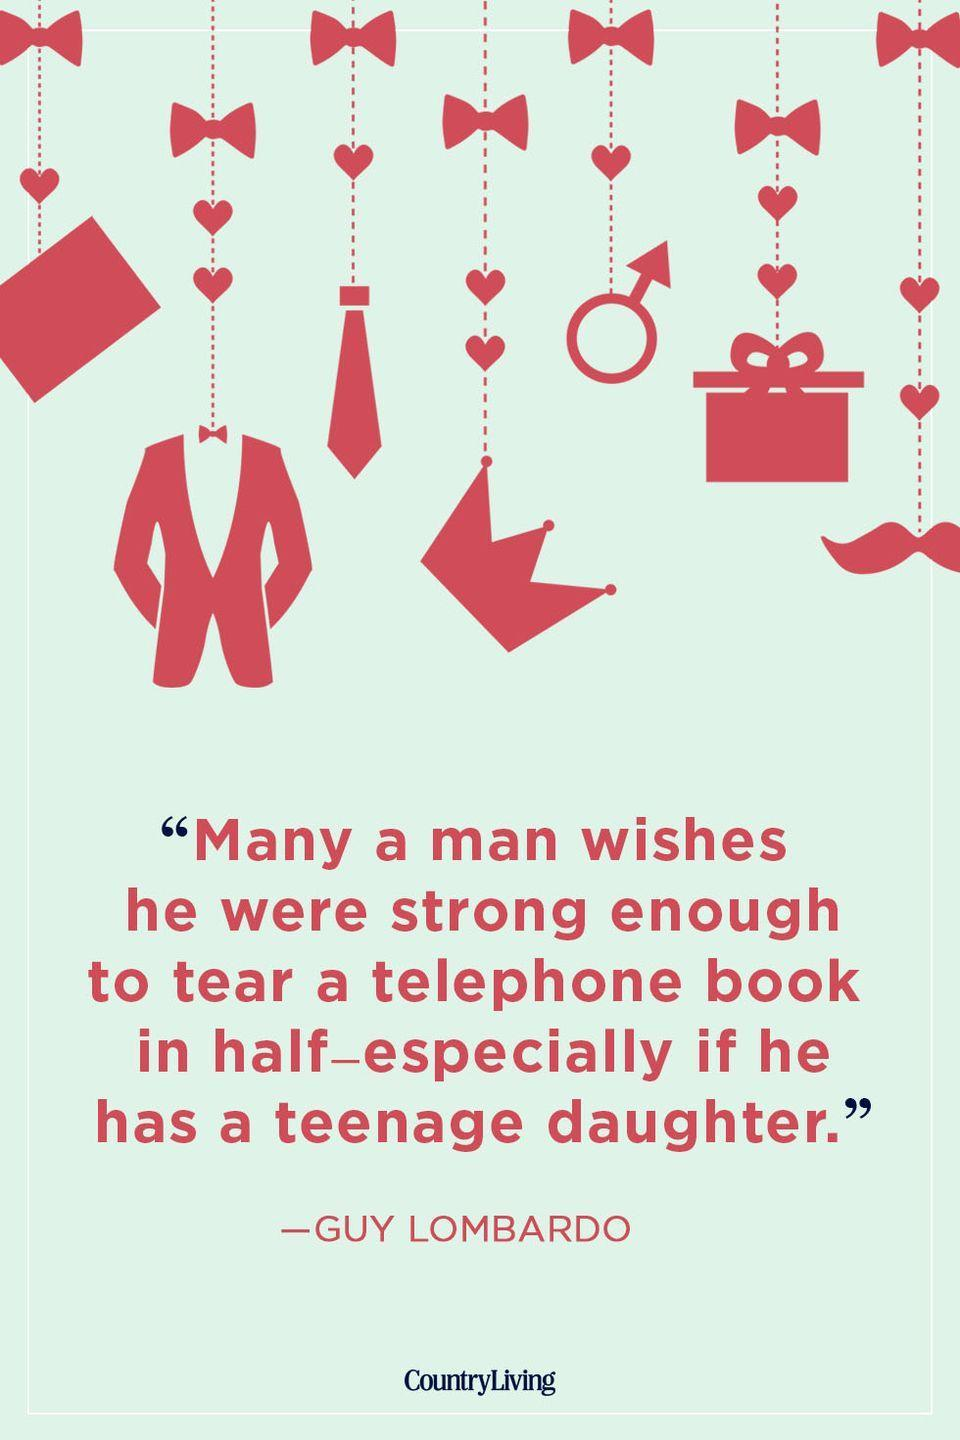 "<p>""Many a man wishes he were strong enough to tear a telephone book in half―especially if he has a teenage daughter.""</p>"